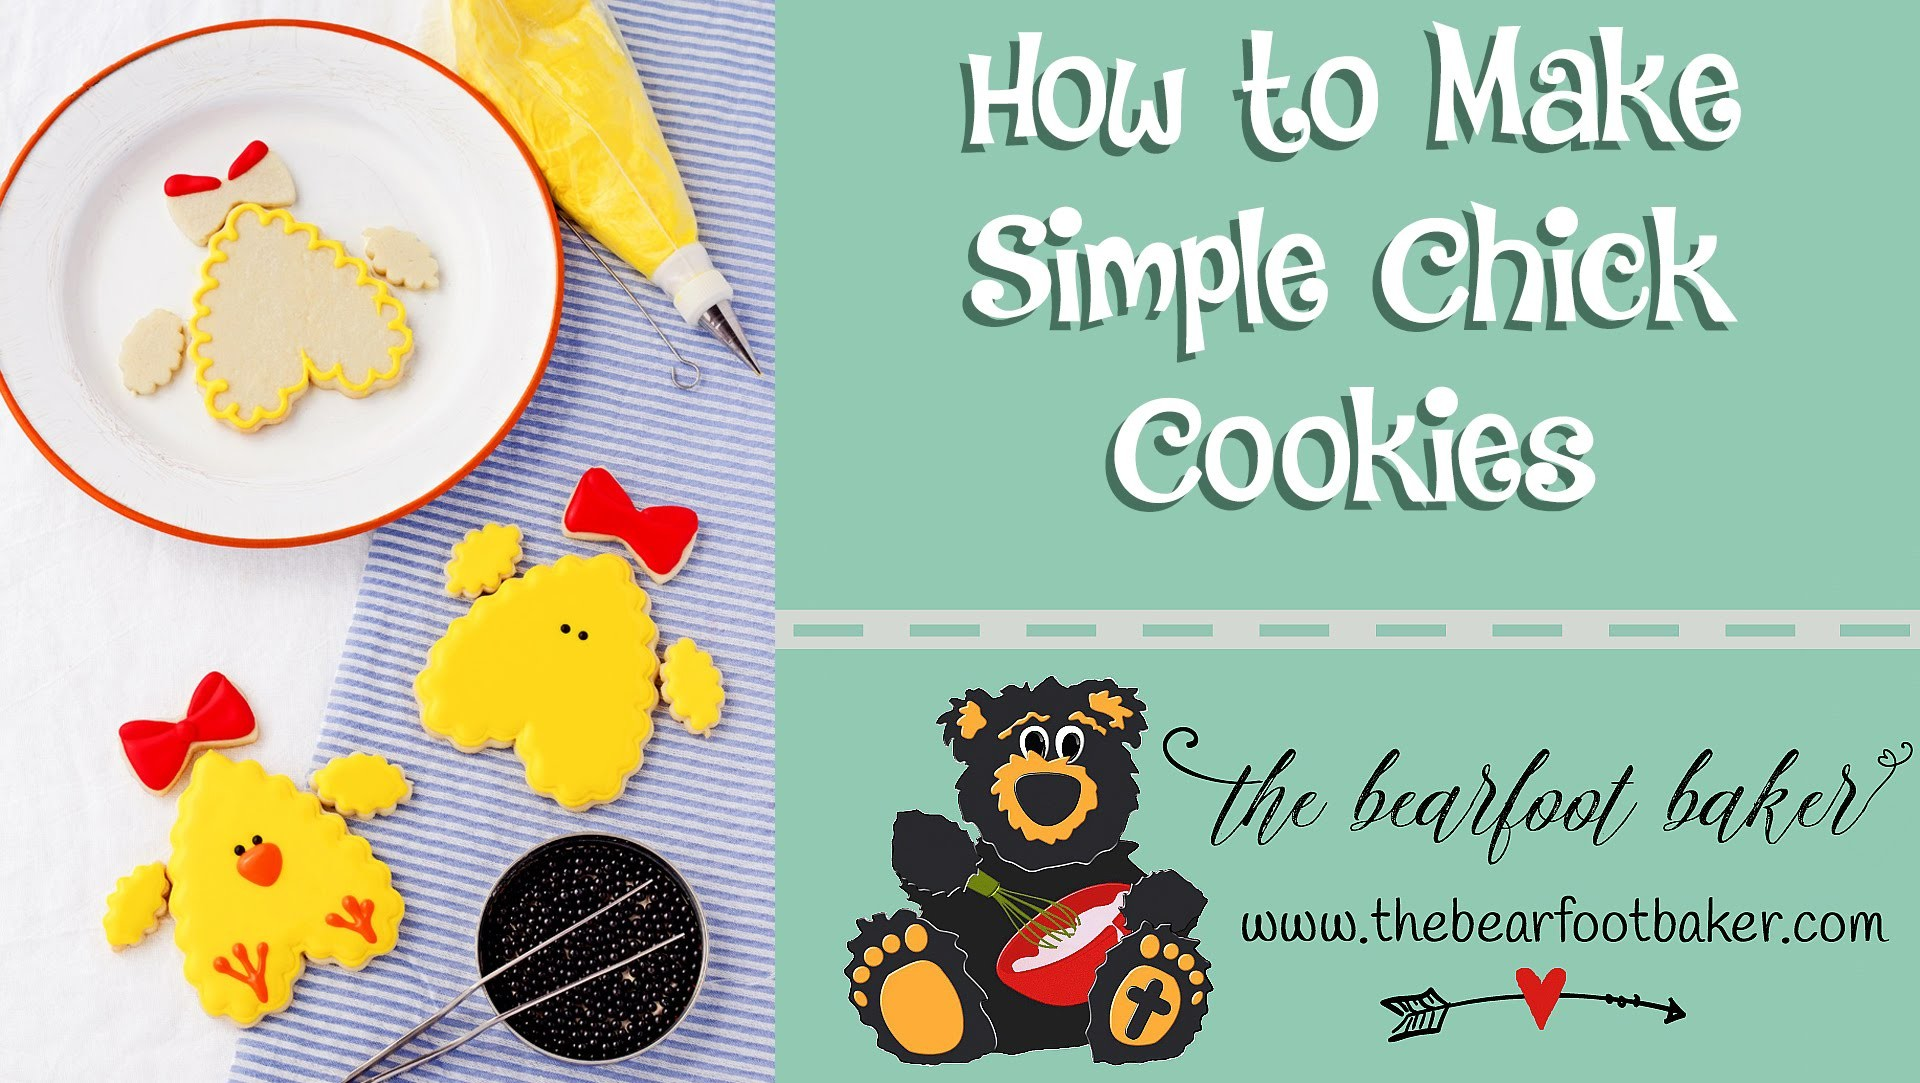 How to Make Chick Cookies | The Bearfoot Baker